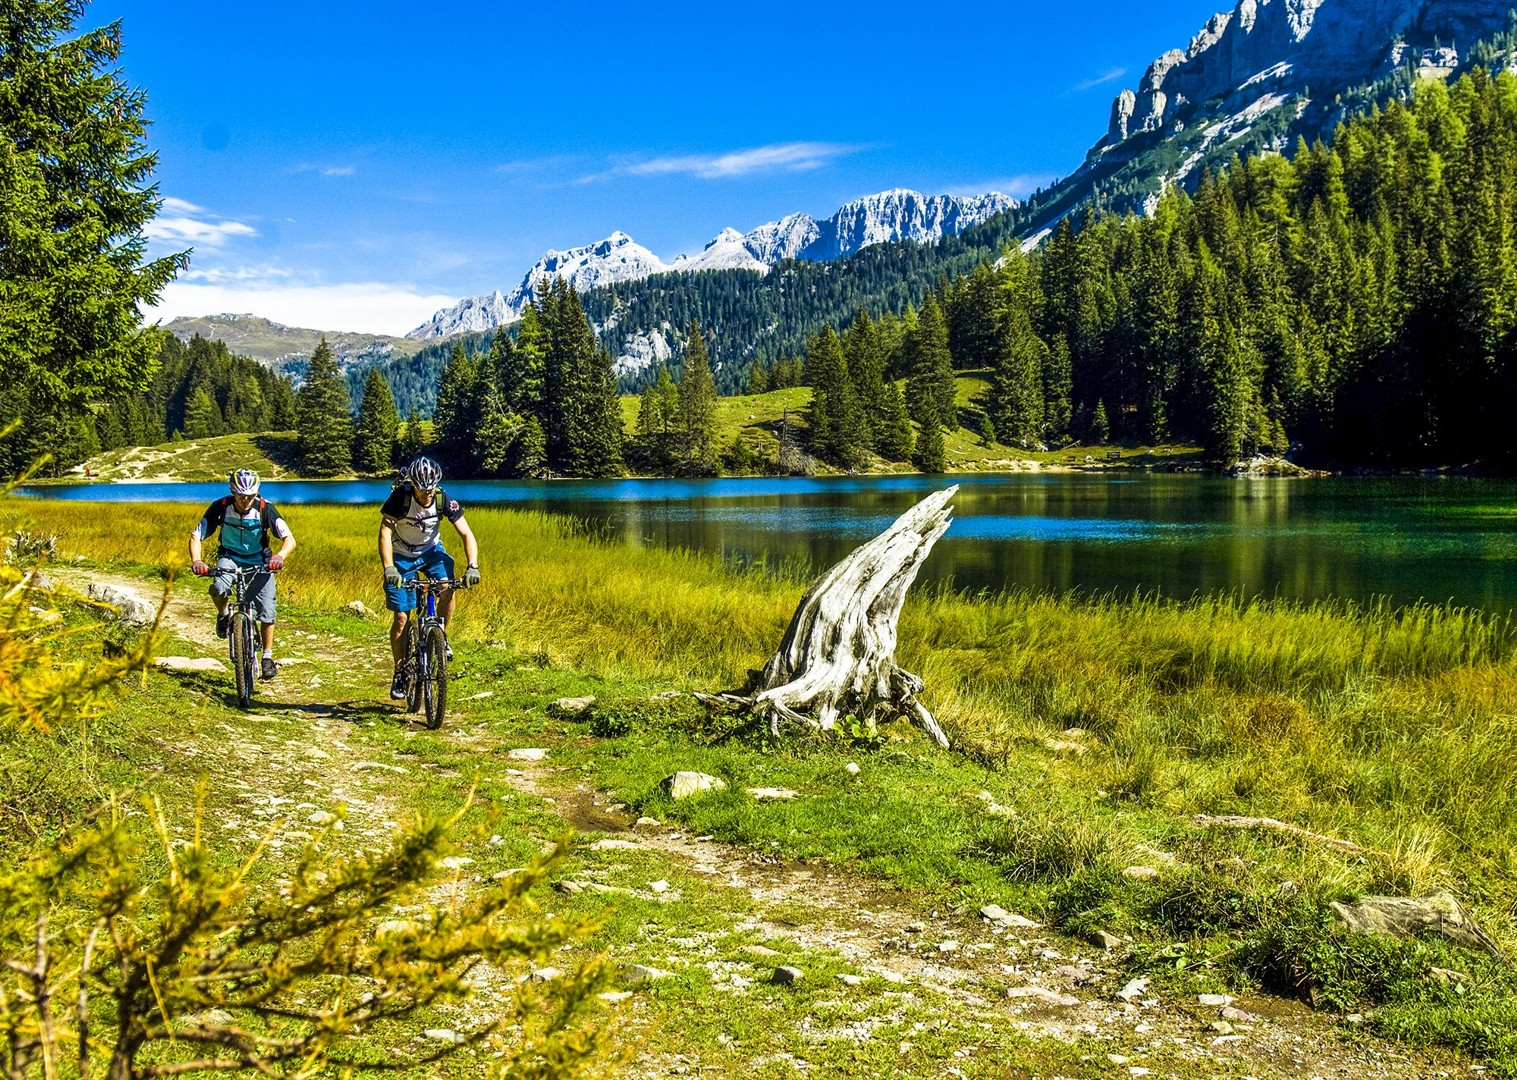 Brenta_Bike_2007_109-2.jpg - Italy - Dolomites of Brenta - Electric Mountain Bike Holiday - Mountain Biking